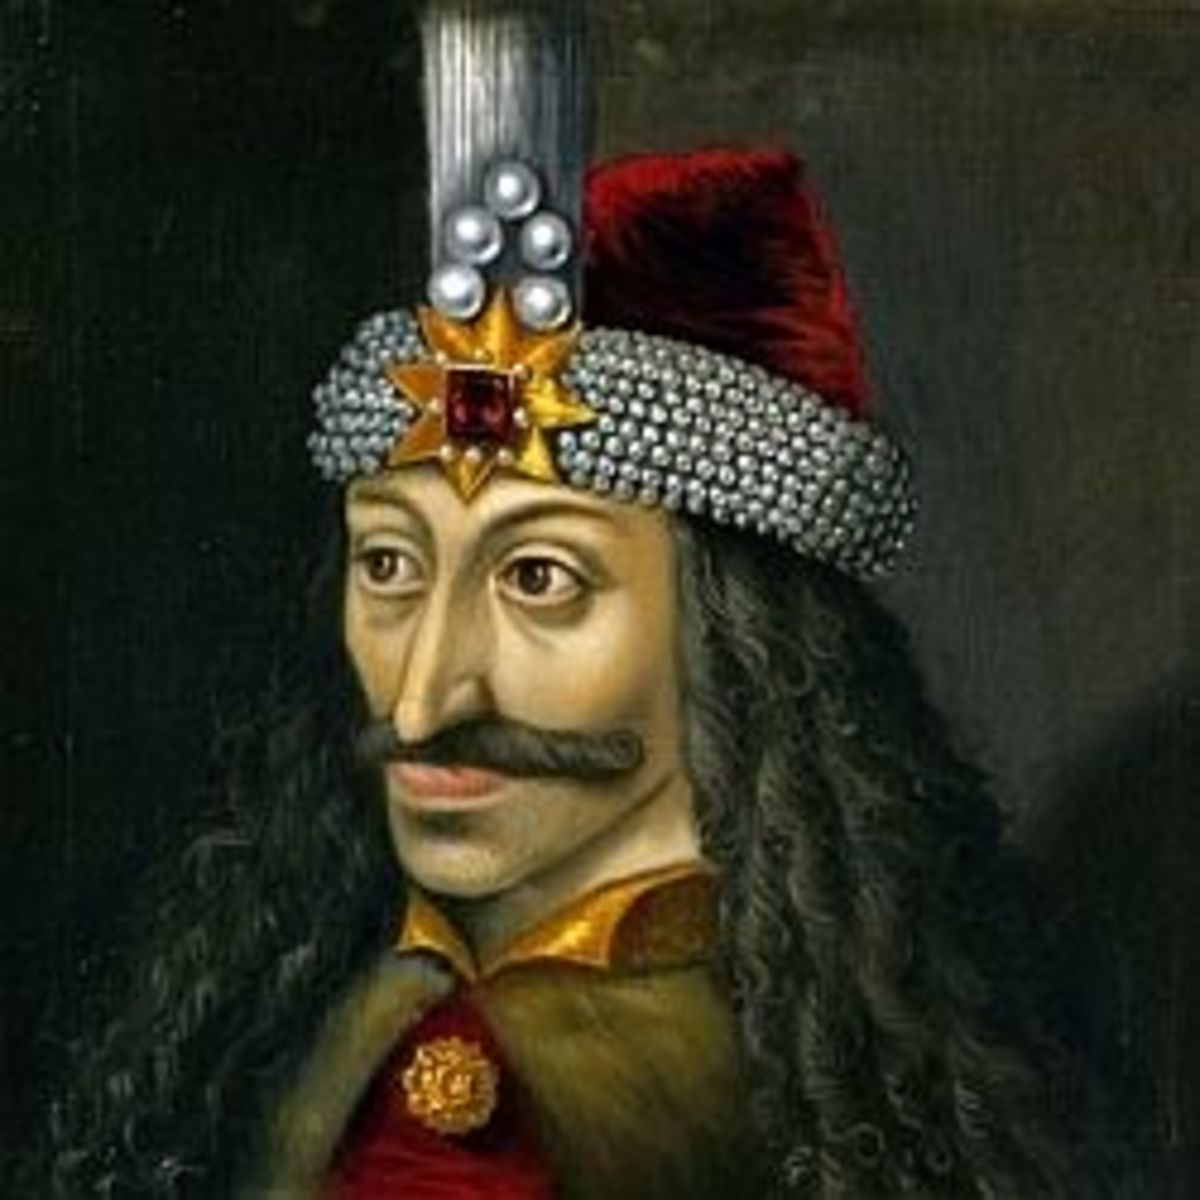 Vlad the Impaler Facts and Myths - The Biography of a Cruel Prince